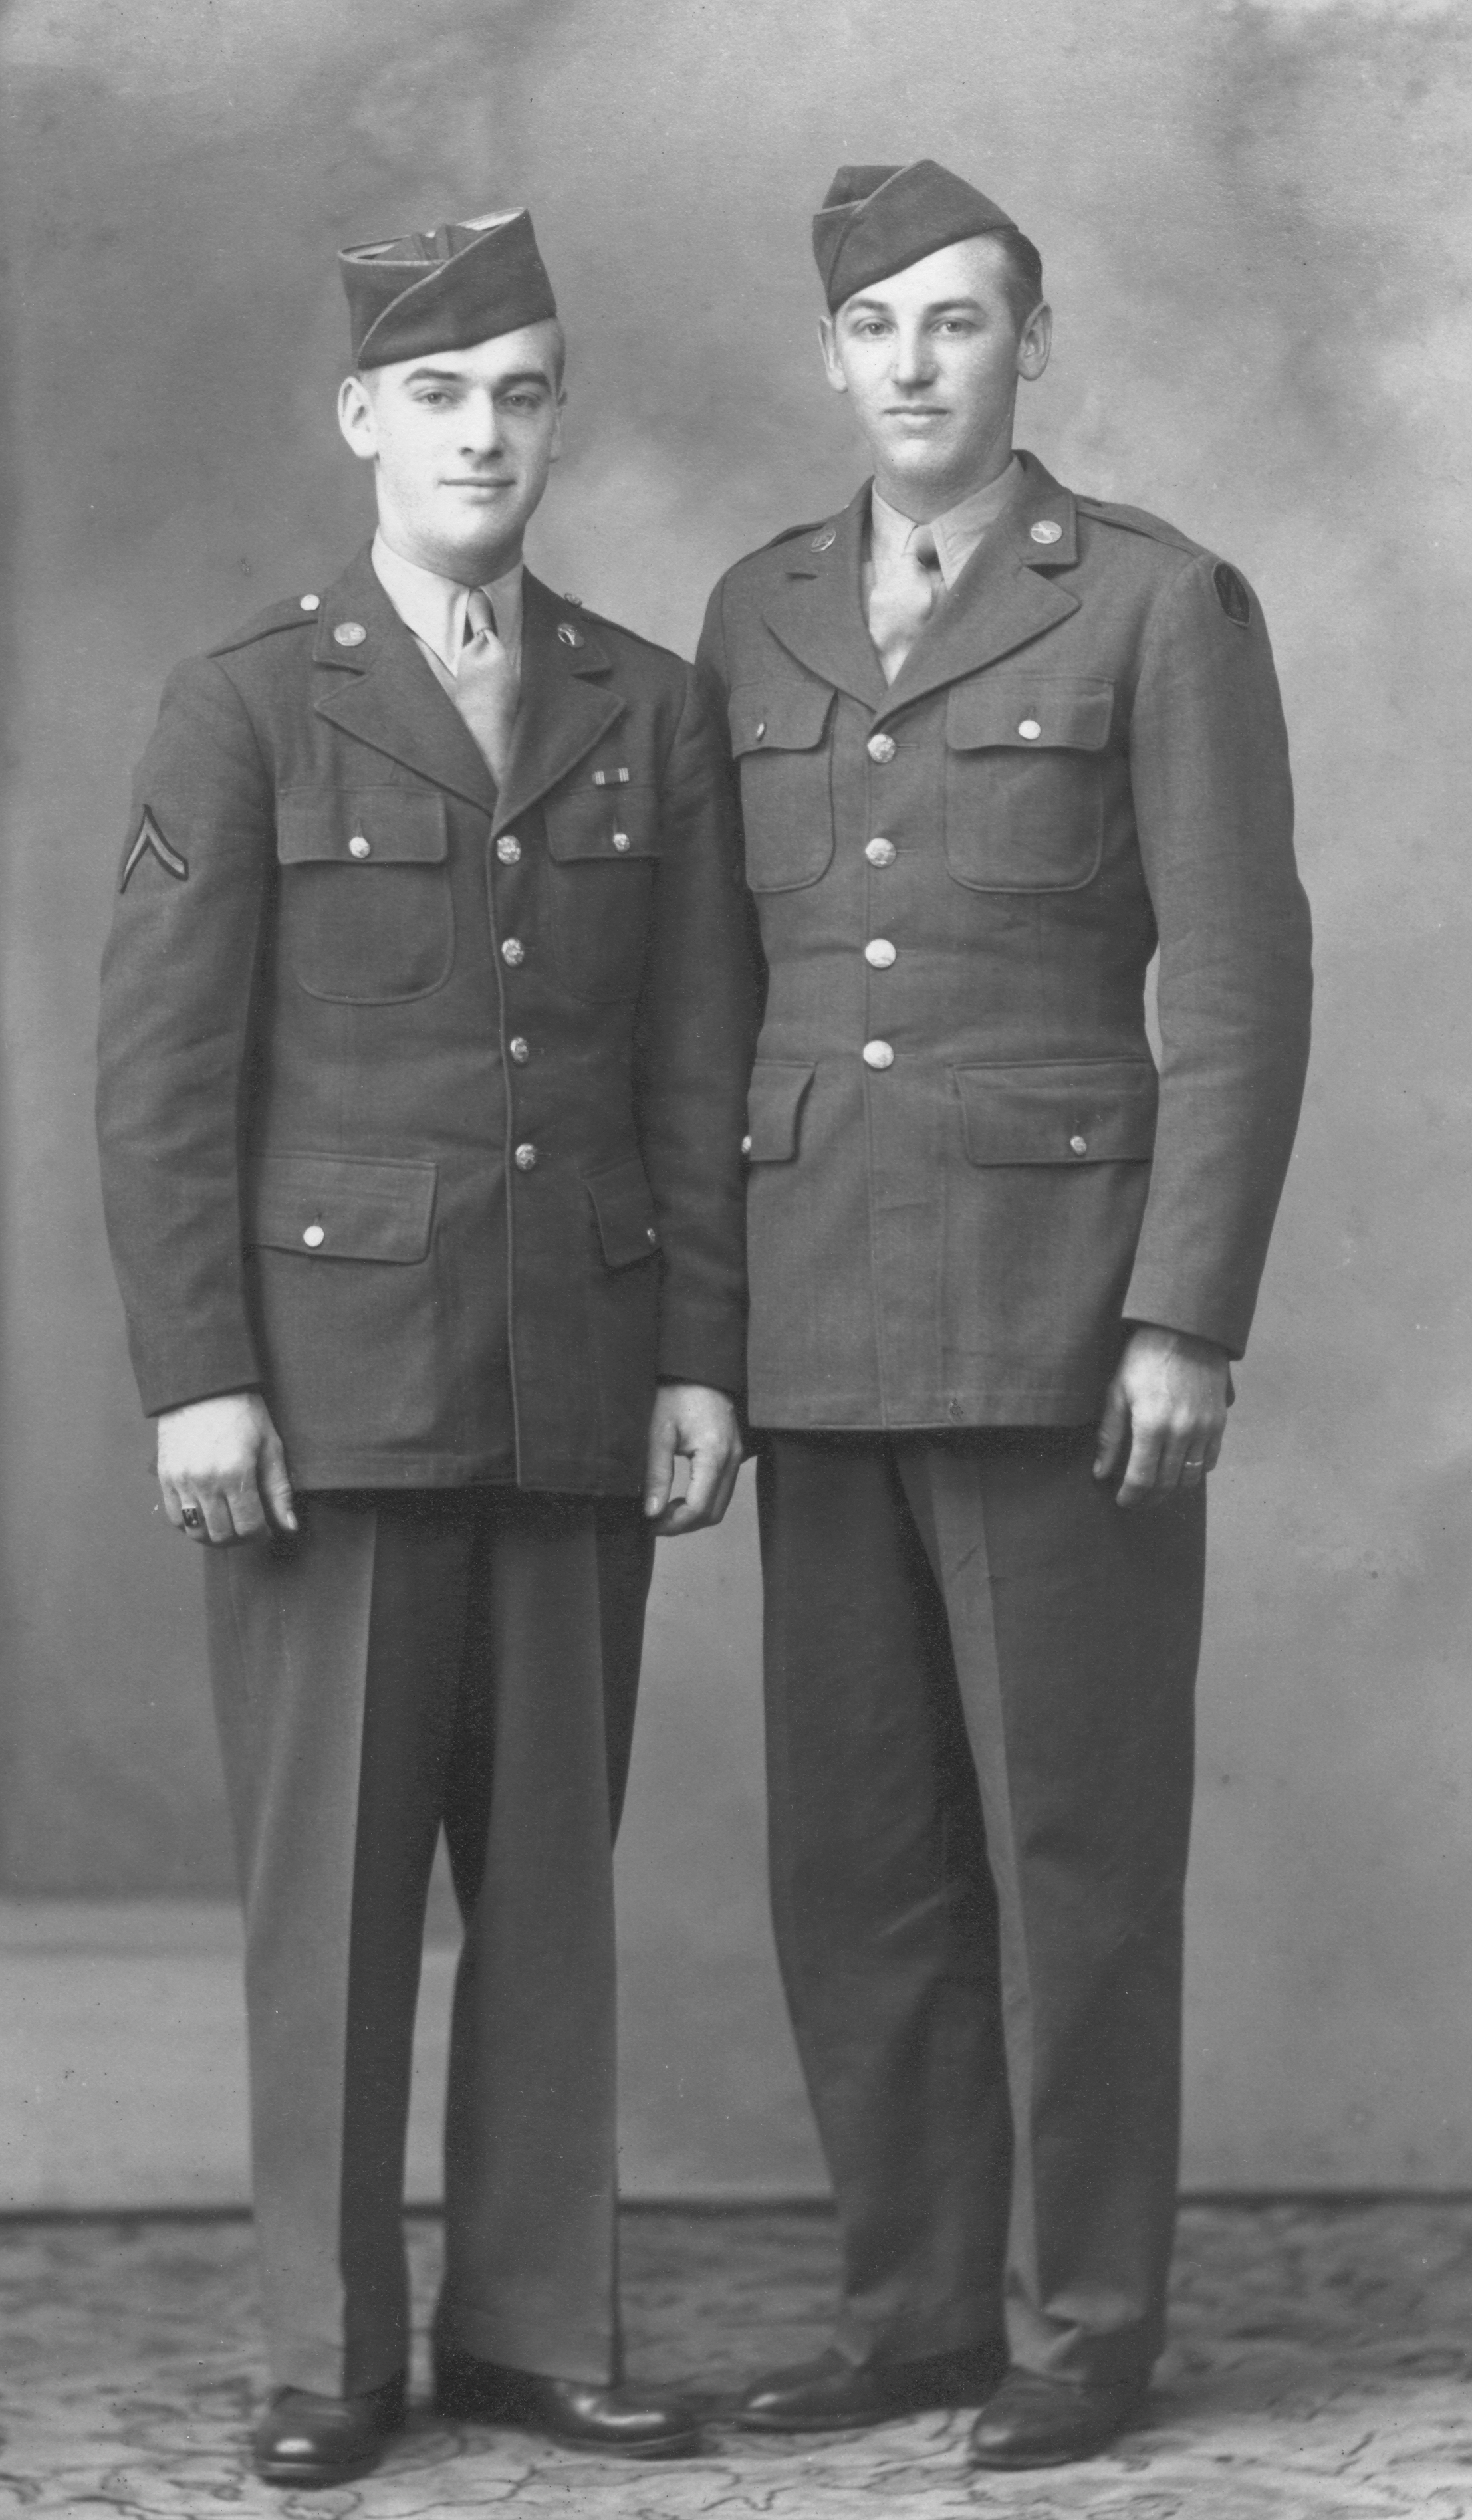 With his brother Bill. Bill was in the Battle of the Bulge and had several Purple Hearts from the experience.